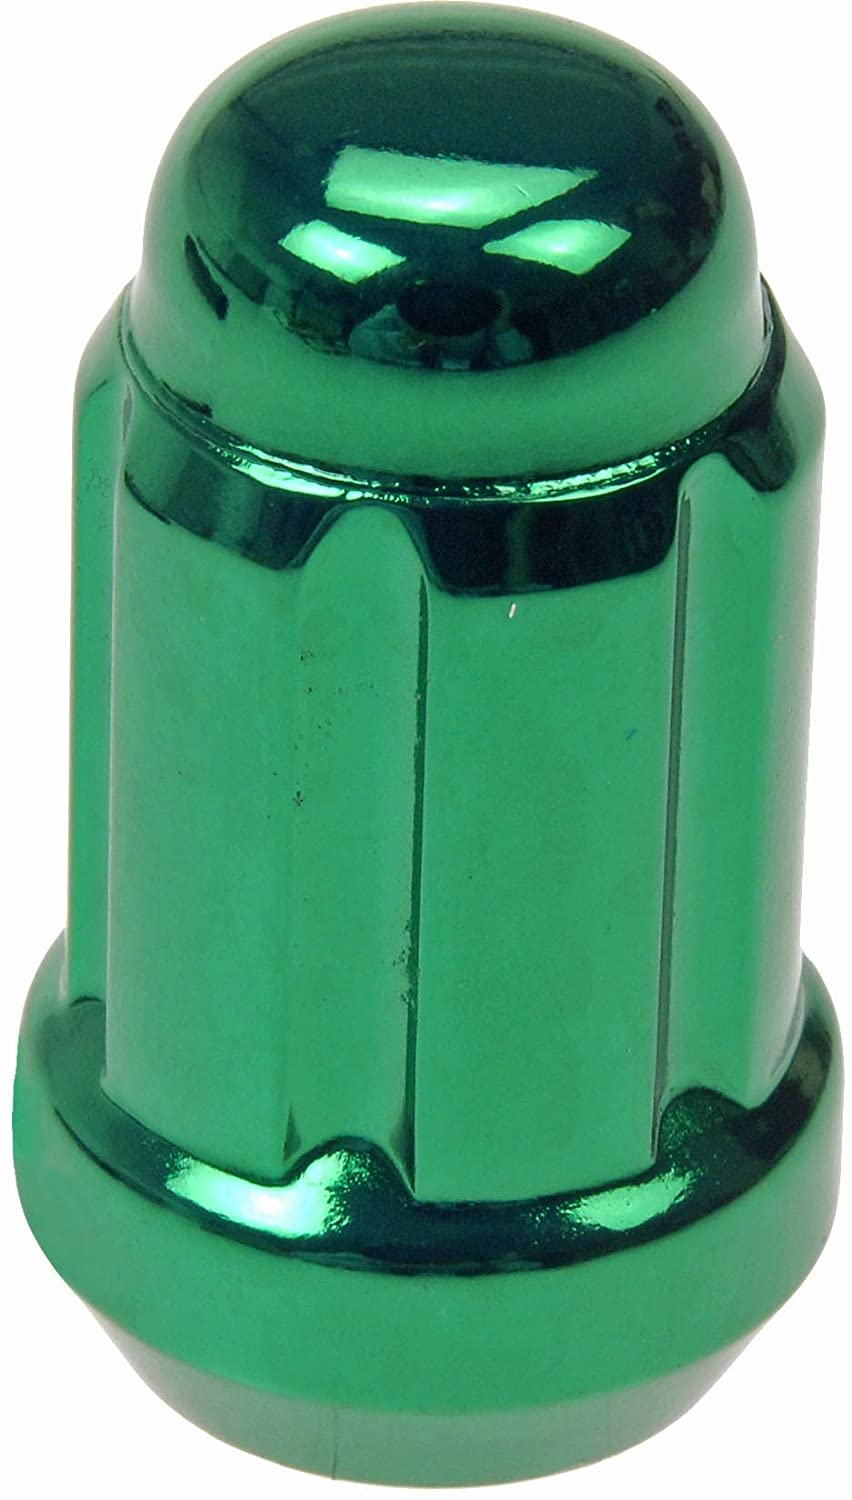 Dorman 711-255F Pack of 20 Green Lock Nuts with Key